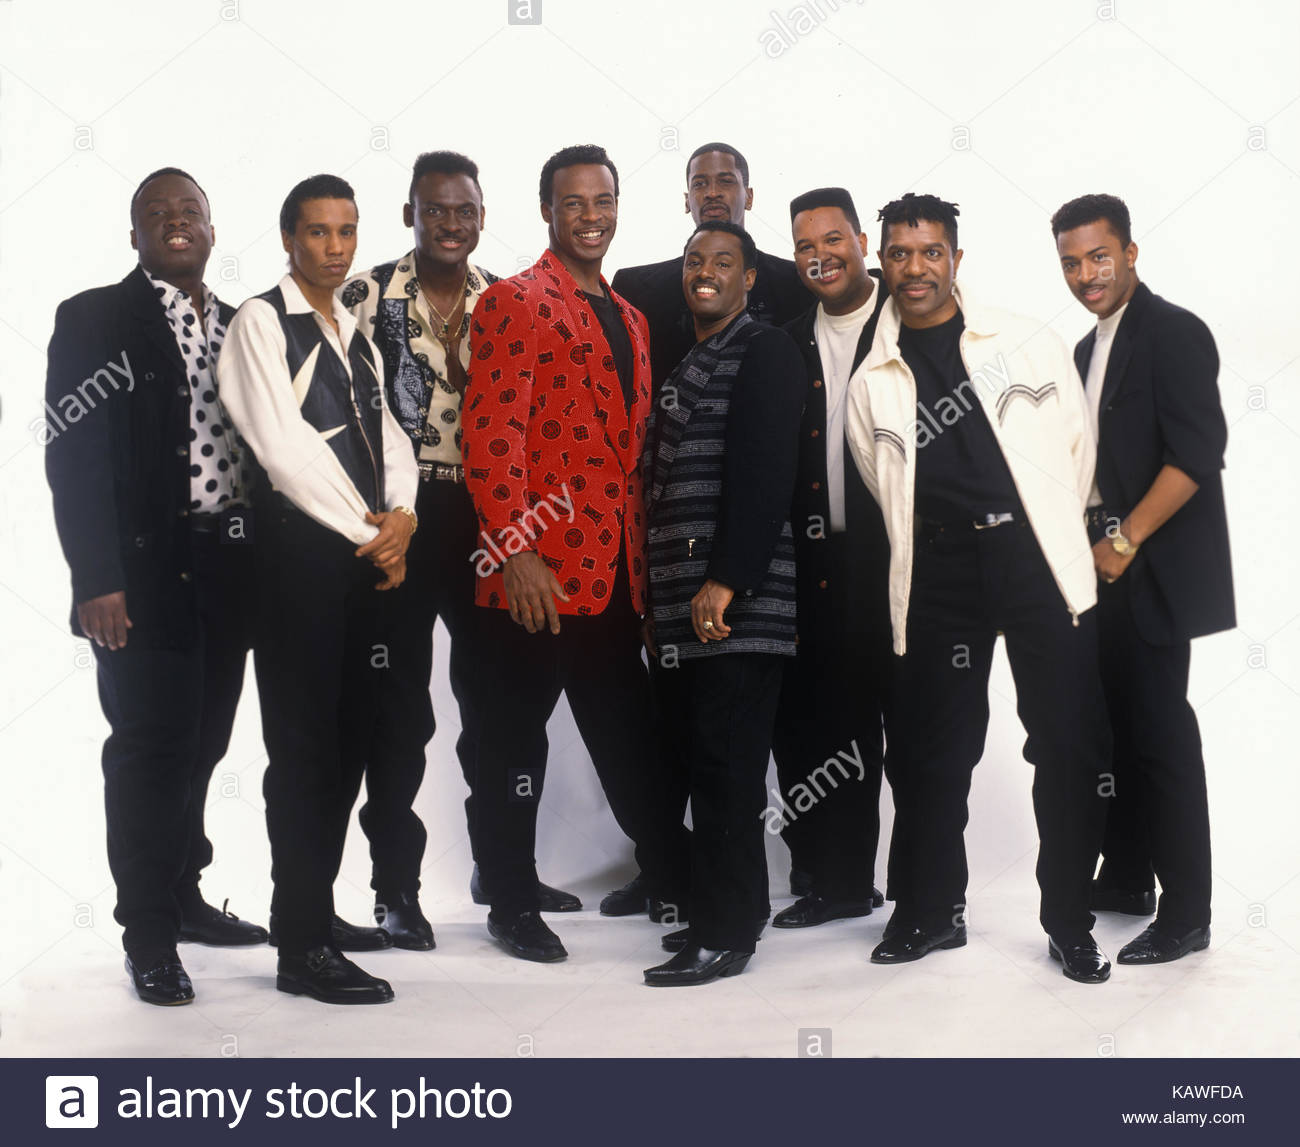 American jazz, R&B, soul, funk and disco group Kool and the Gang, (L-R) Claydes Charles Smith, Robert Goble, - Stock Image